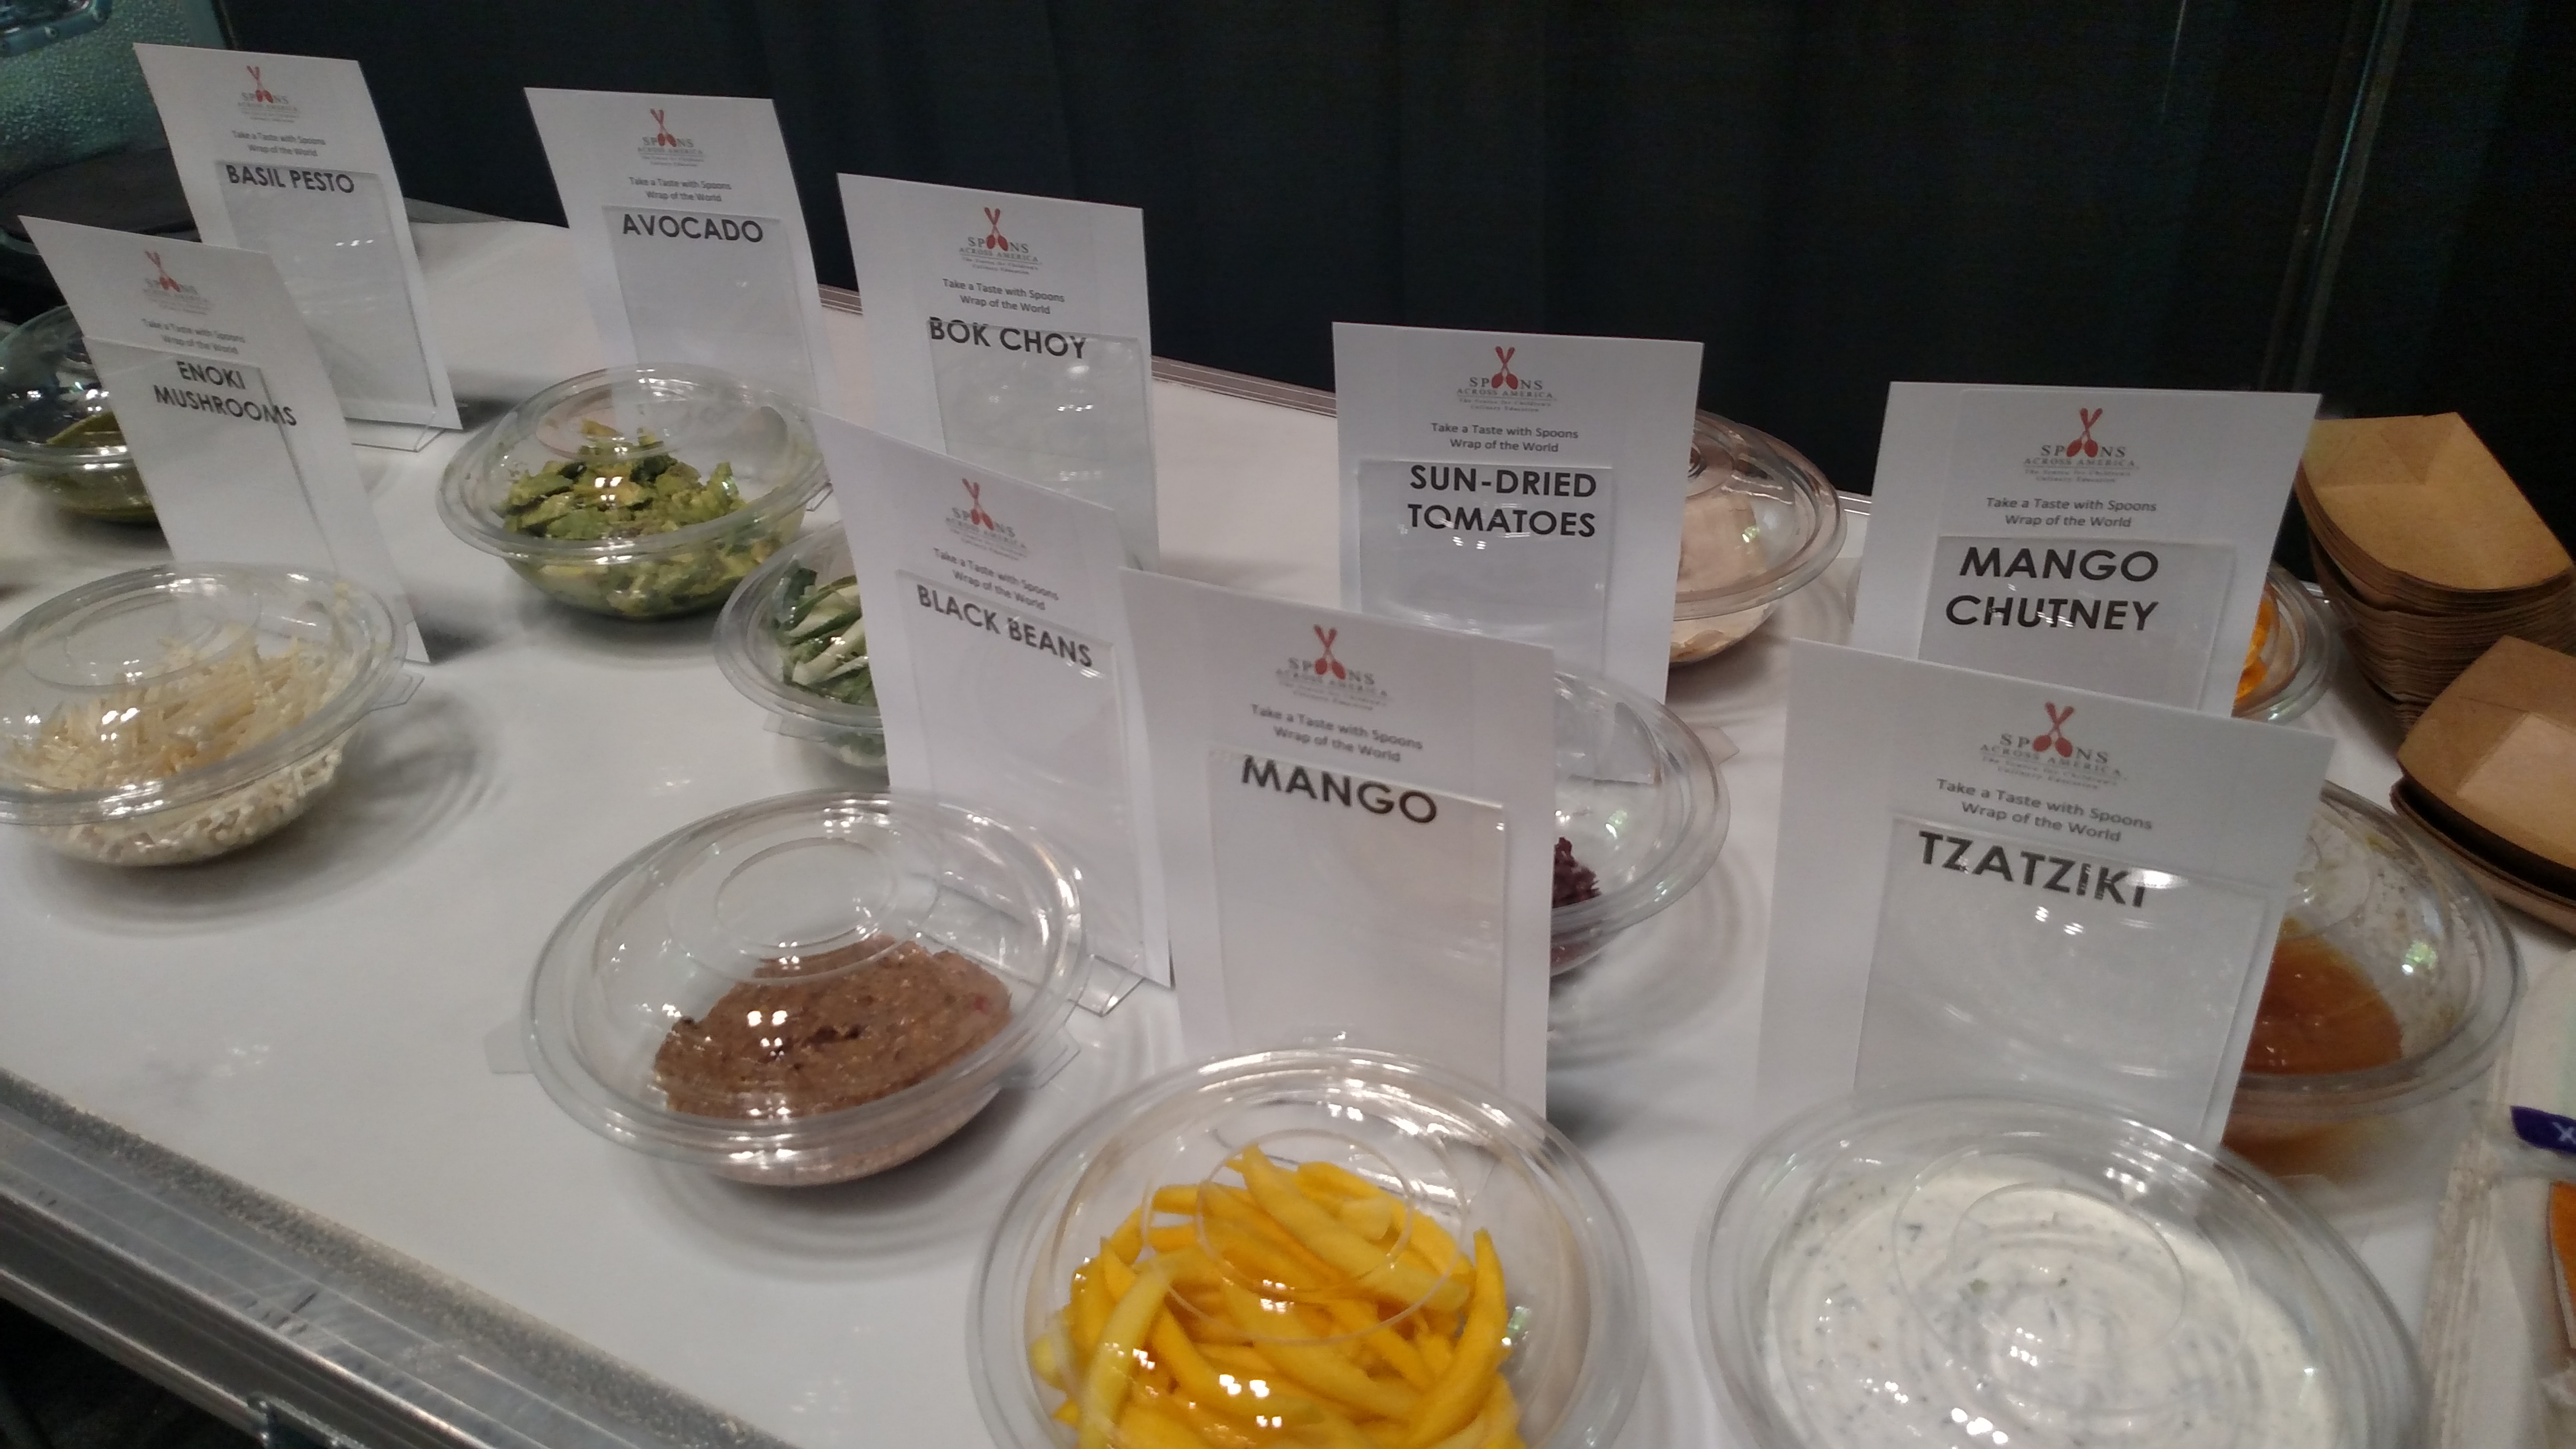 """Children got to taste lots of different foods at a Spoons Across America program at """"Taste of the World: Kid's Kitchen"""" at the New York Times Travel Show this past winter."""